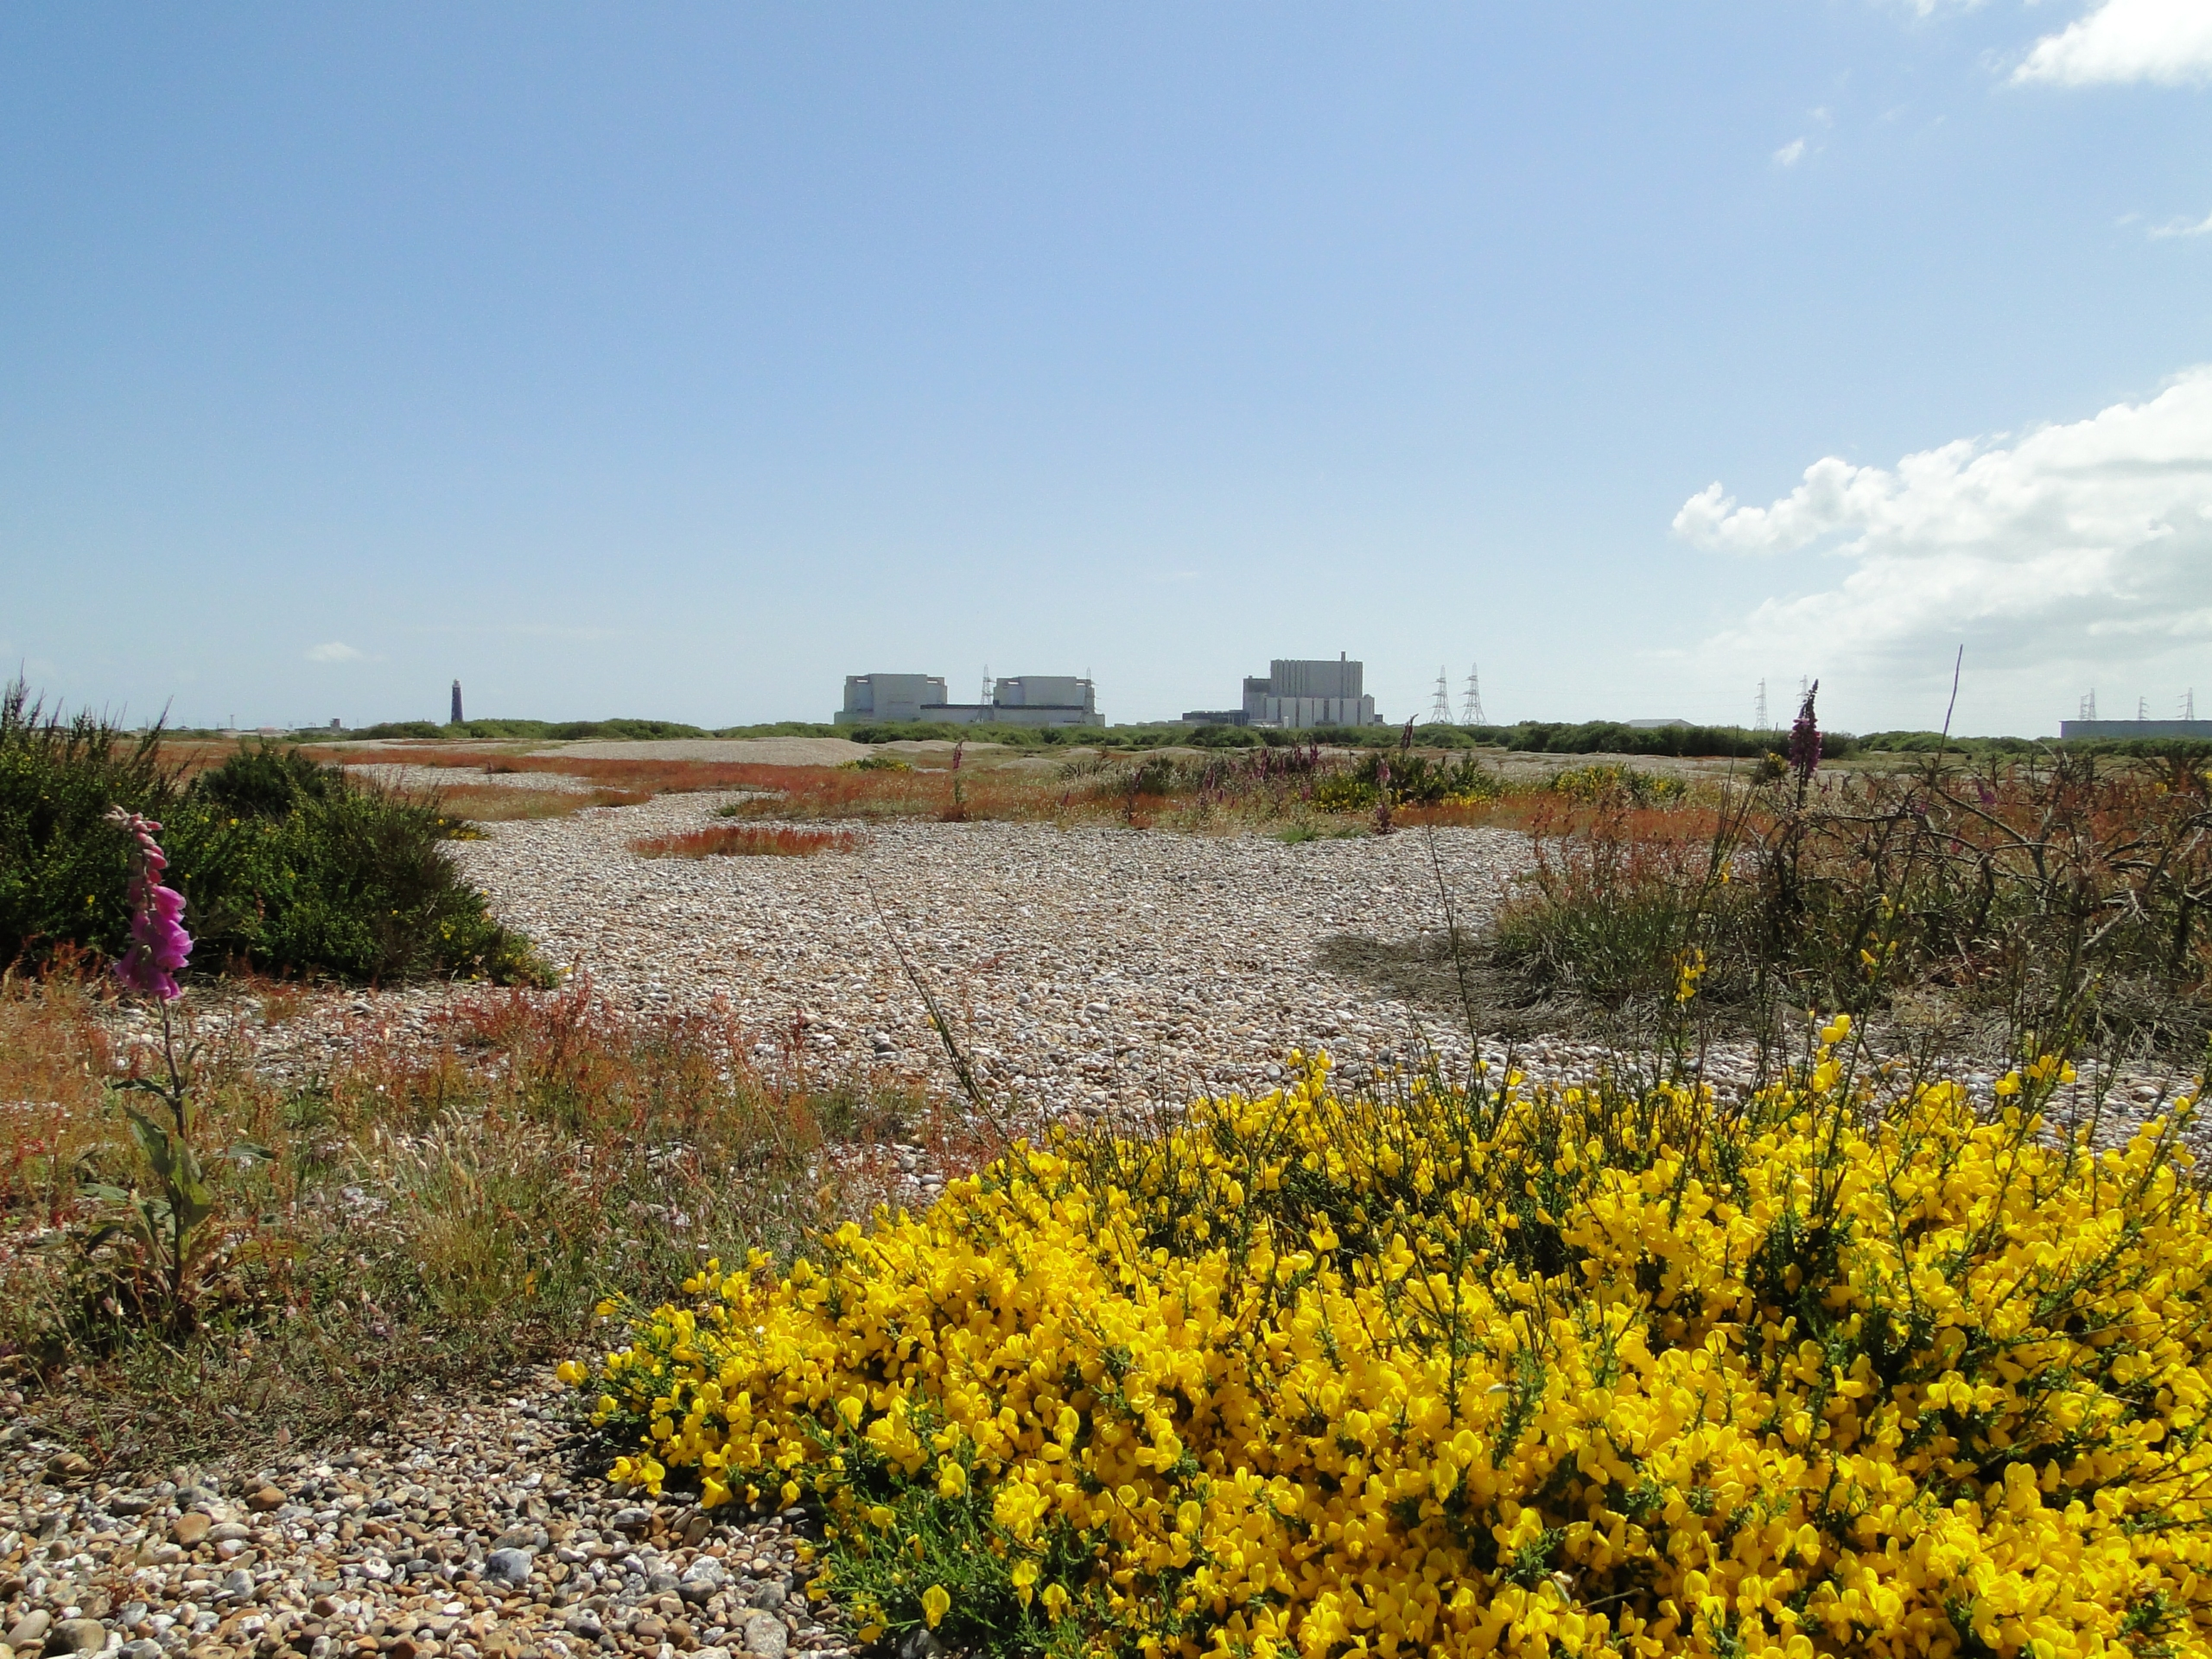 Dungeness B nuclear power station in Kent